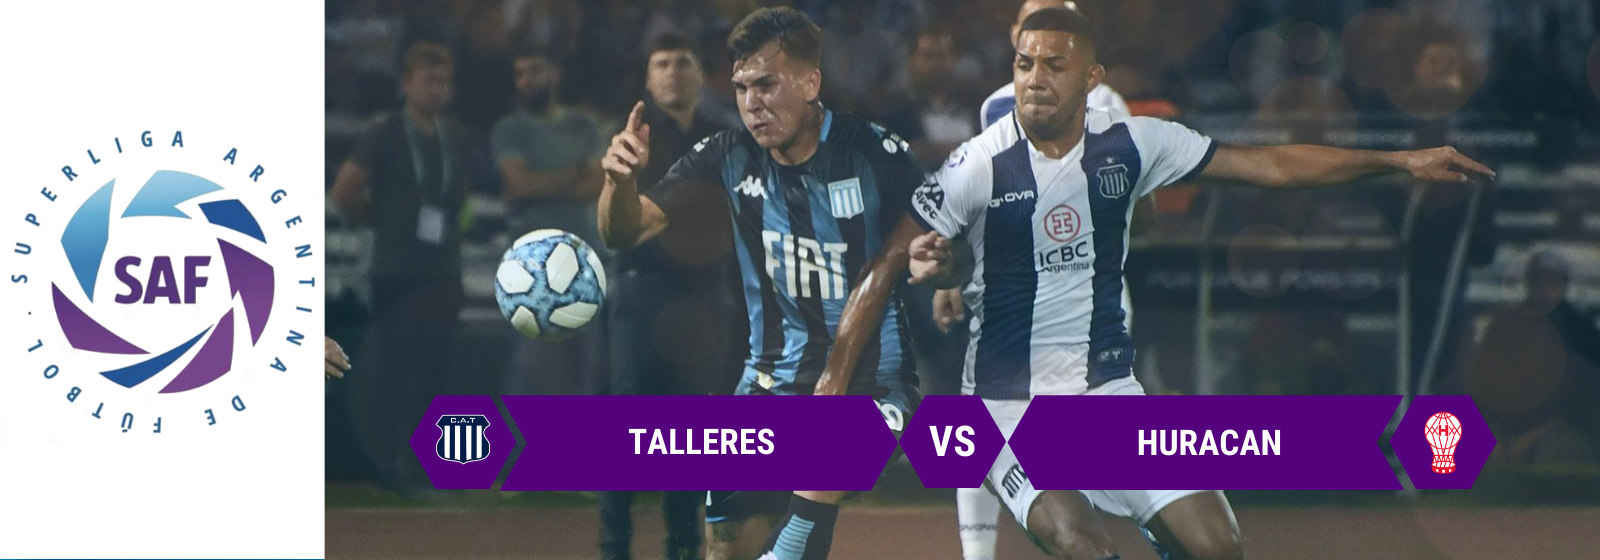 Asianconnect: Talleres vs Huracan Odds for February 24, 2020